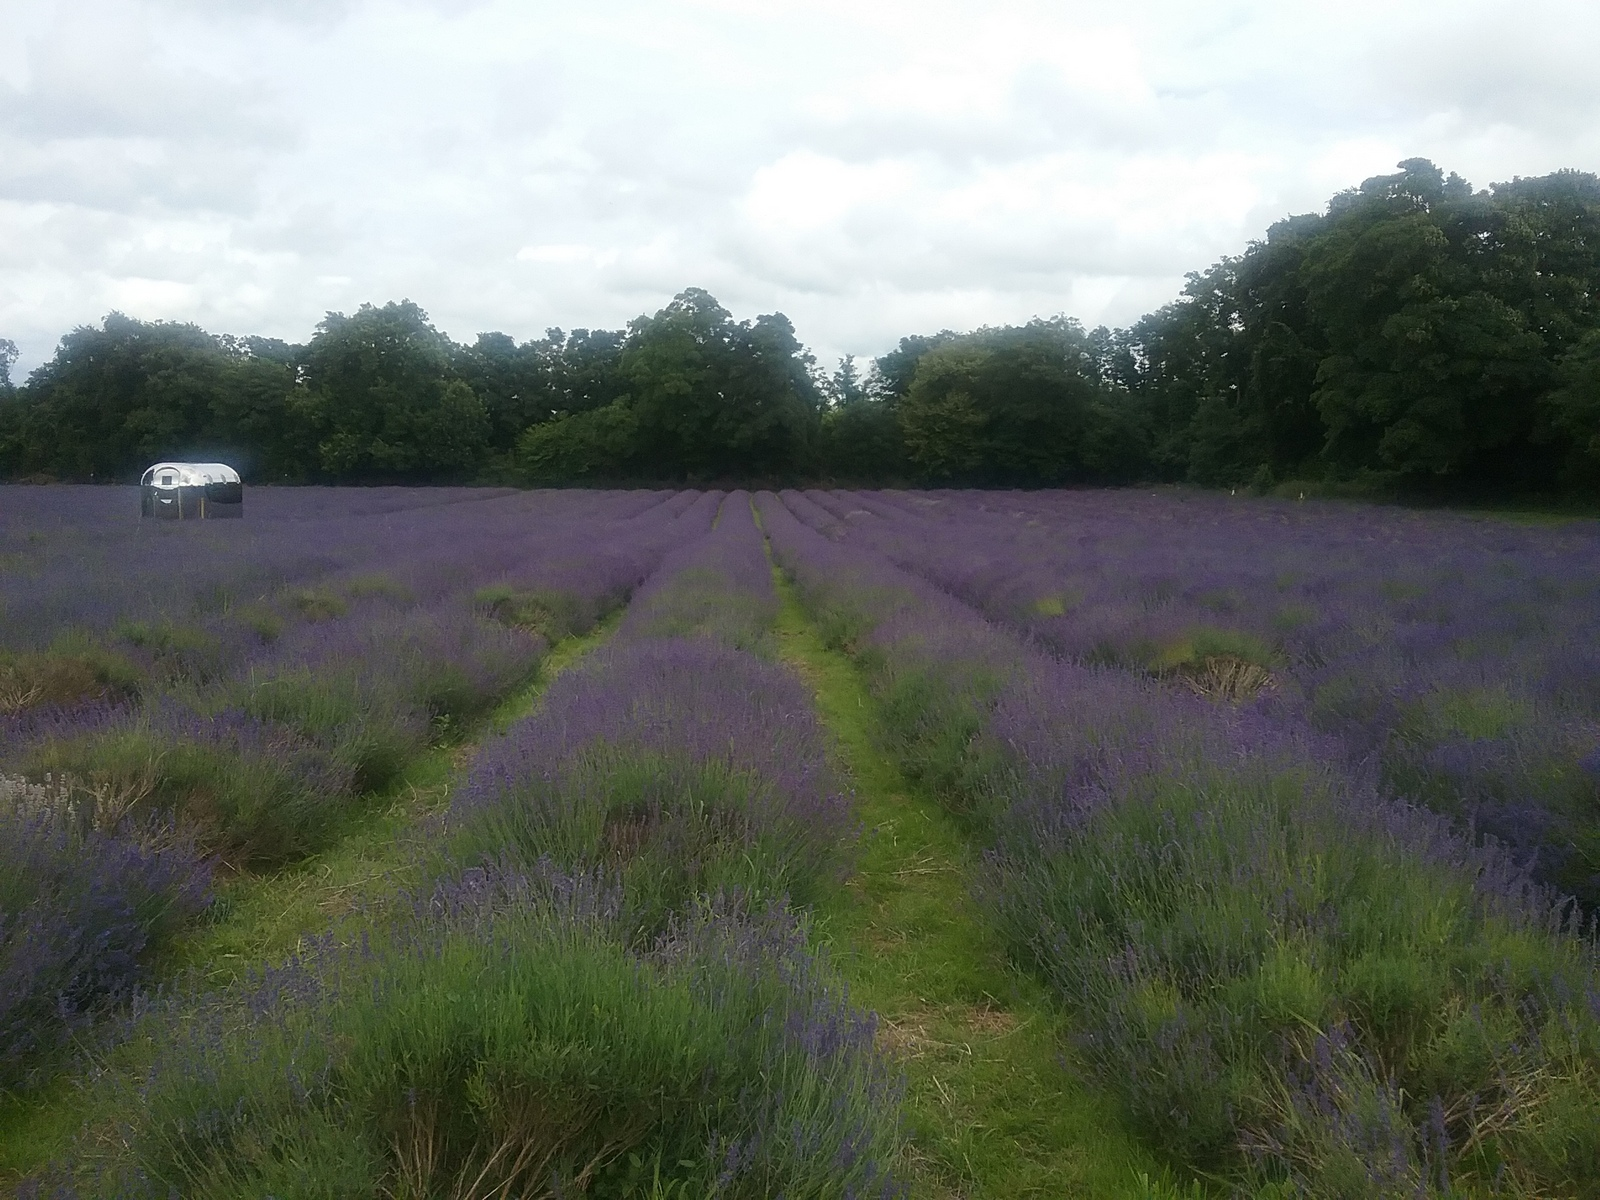 20160630_160920 Public footpath across Mayfield Farm lavender fields